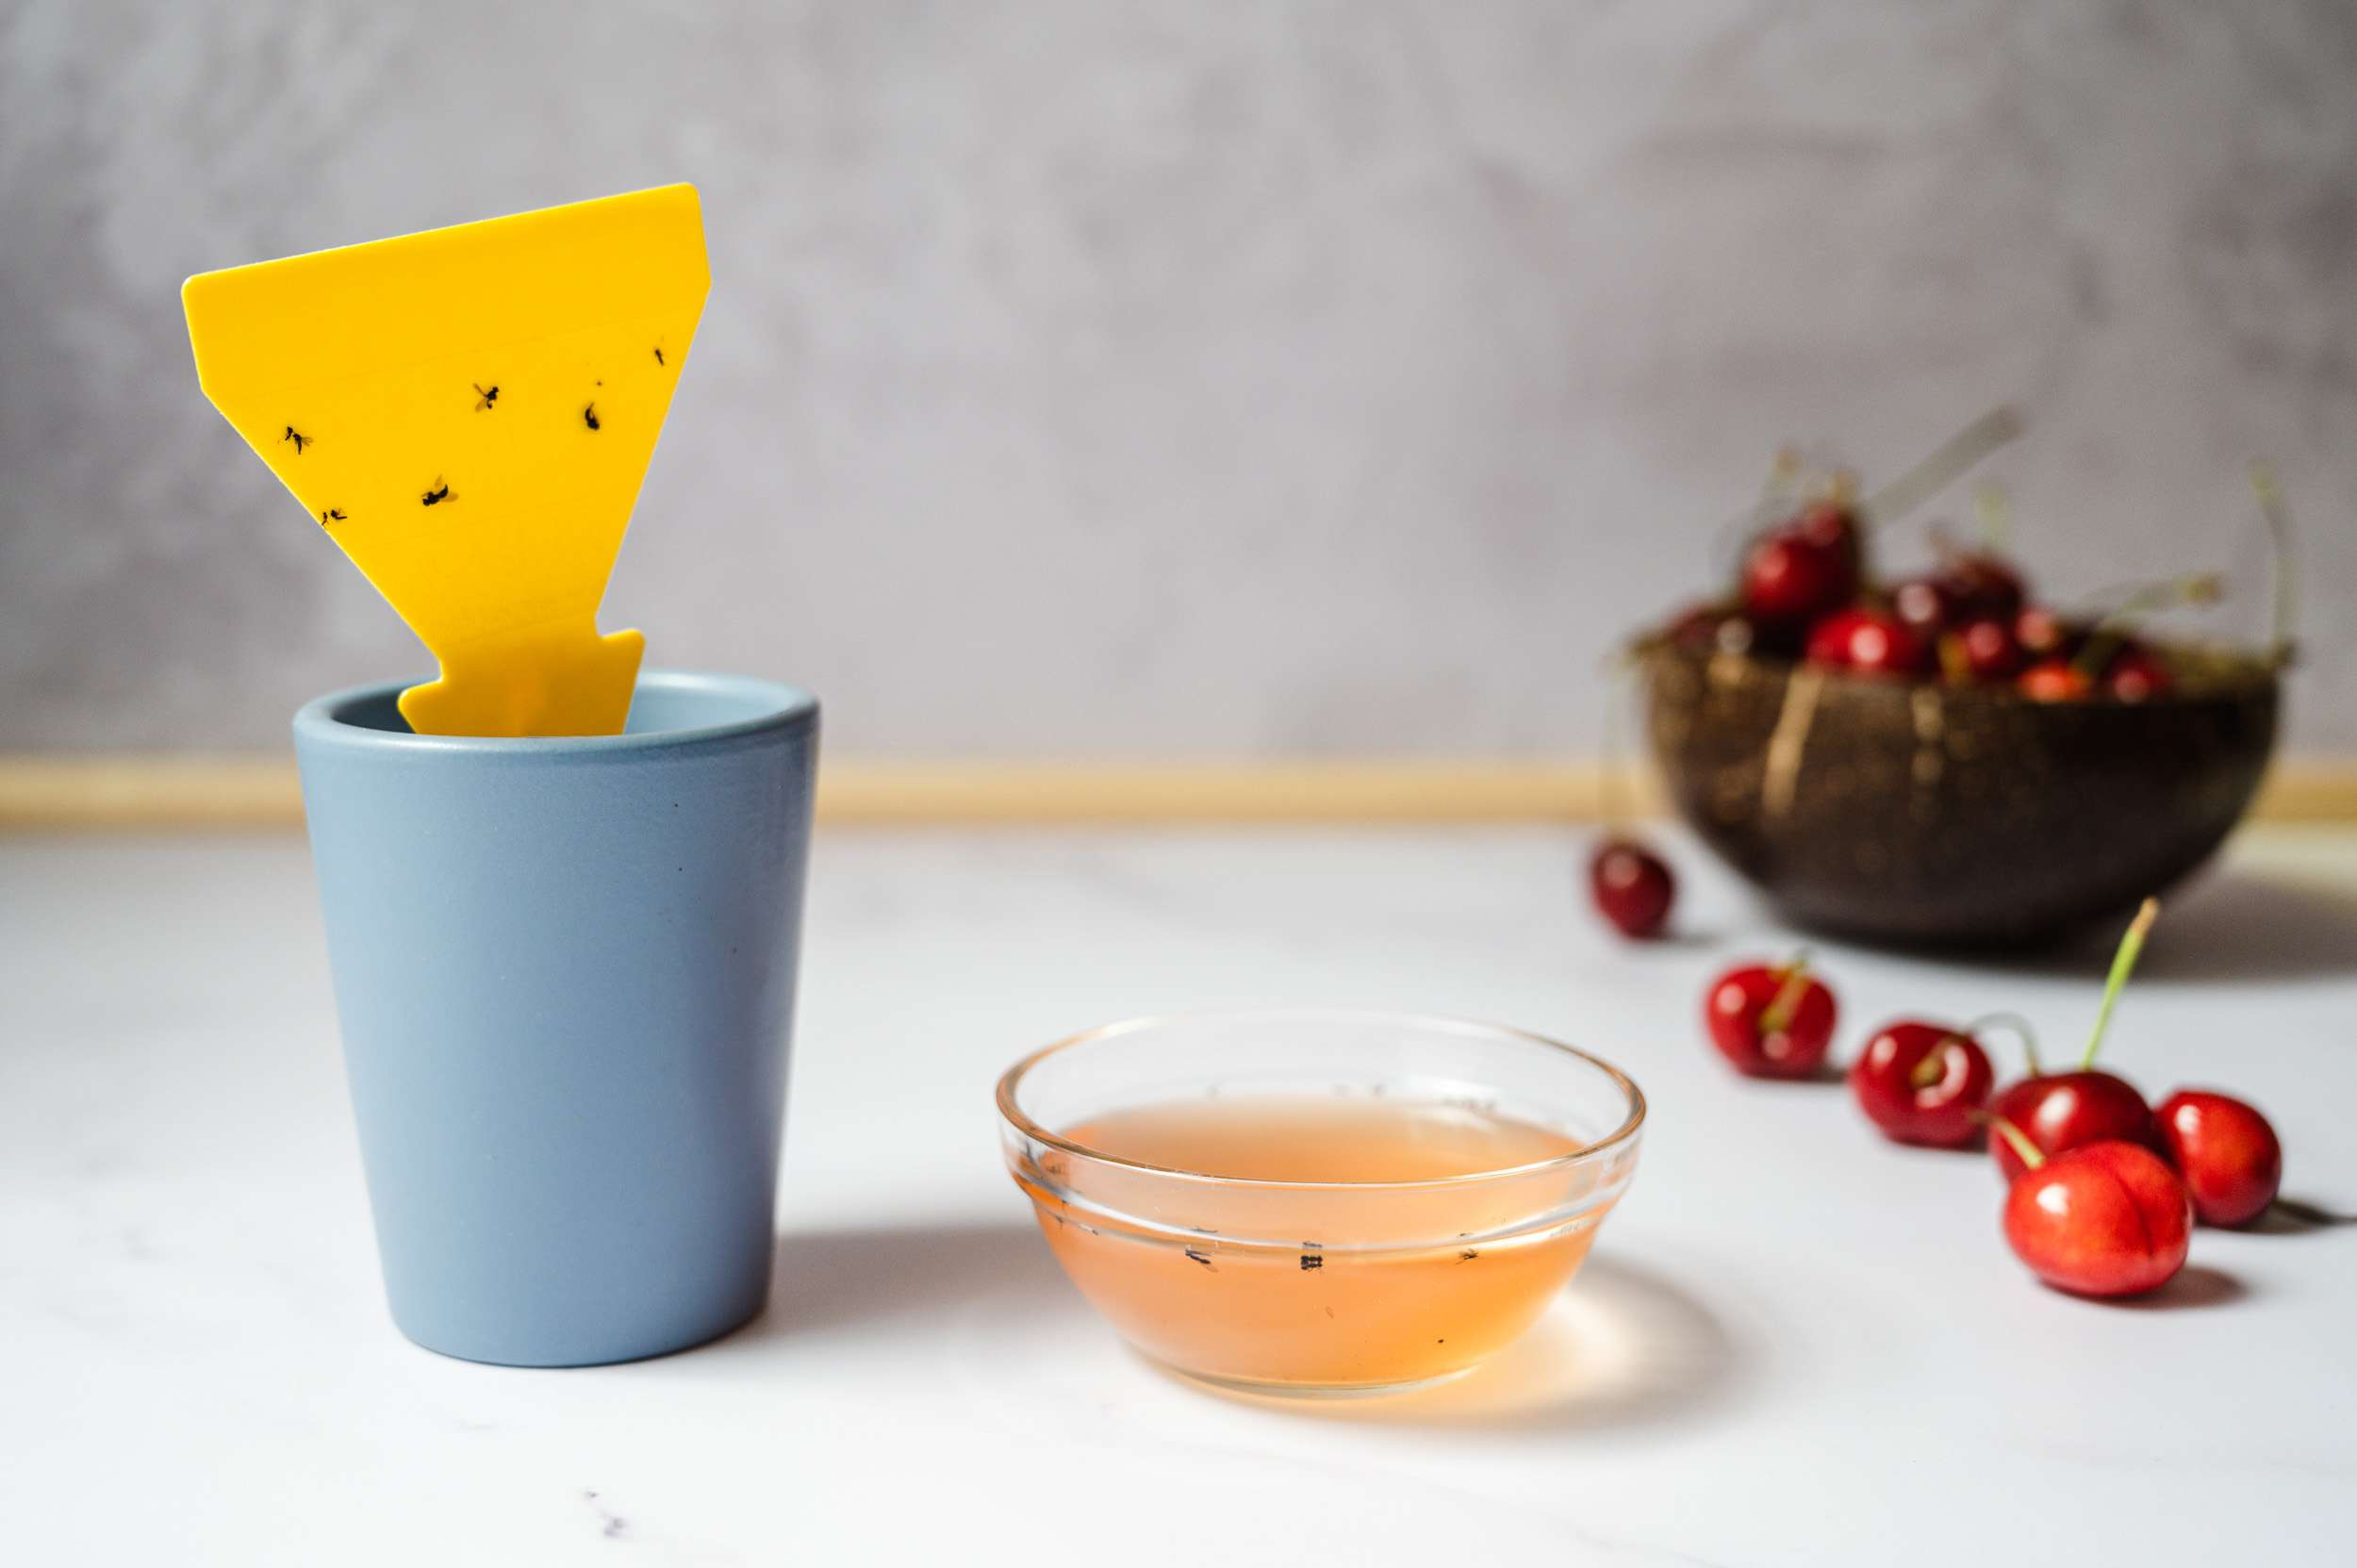 Homemade fly trap with sticky pads and bowl of vinegar next to bowl of cherries